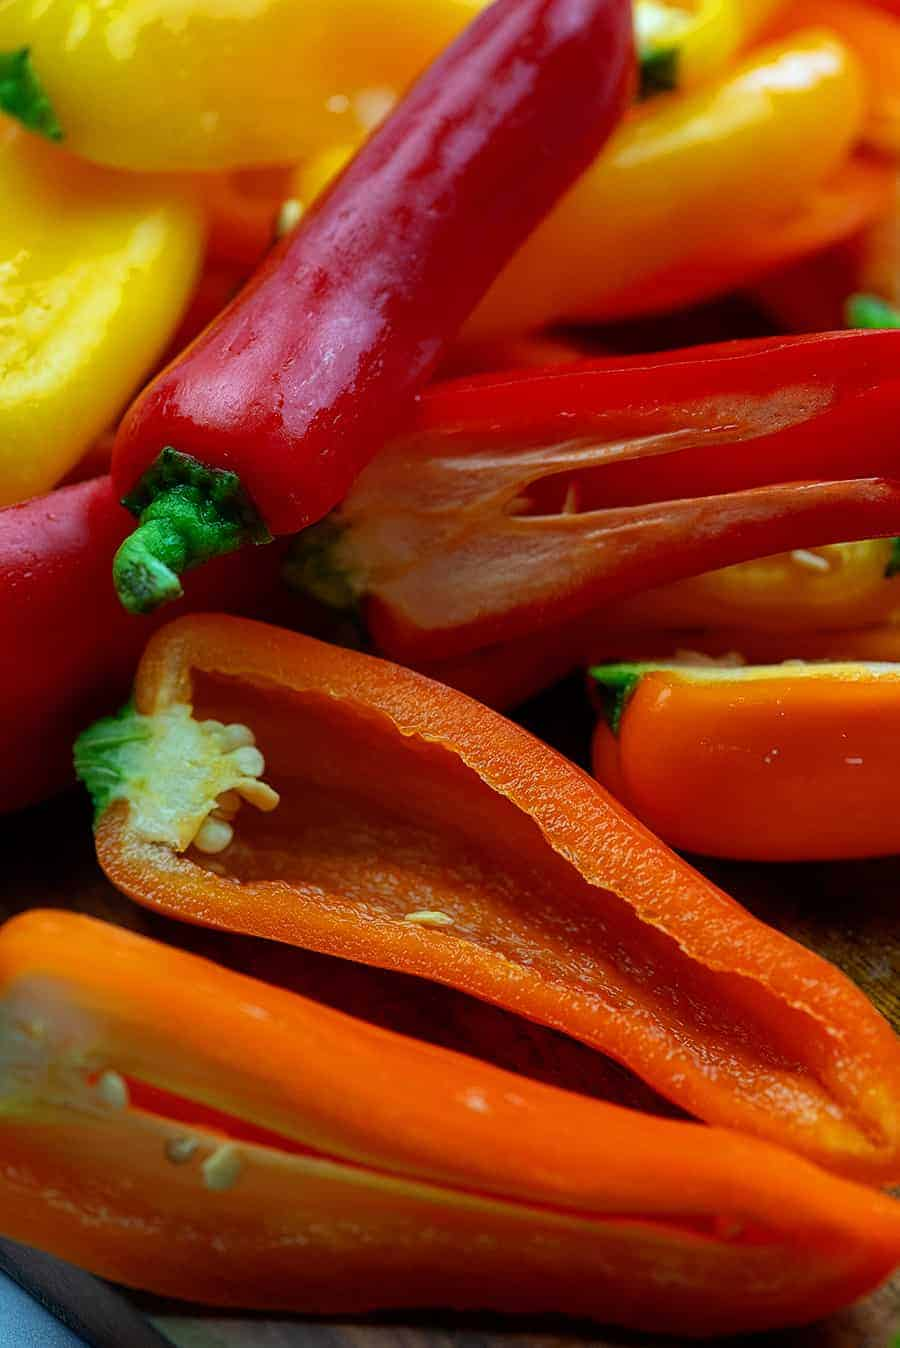 sliced mini peppers for stuffing